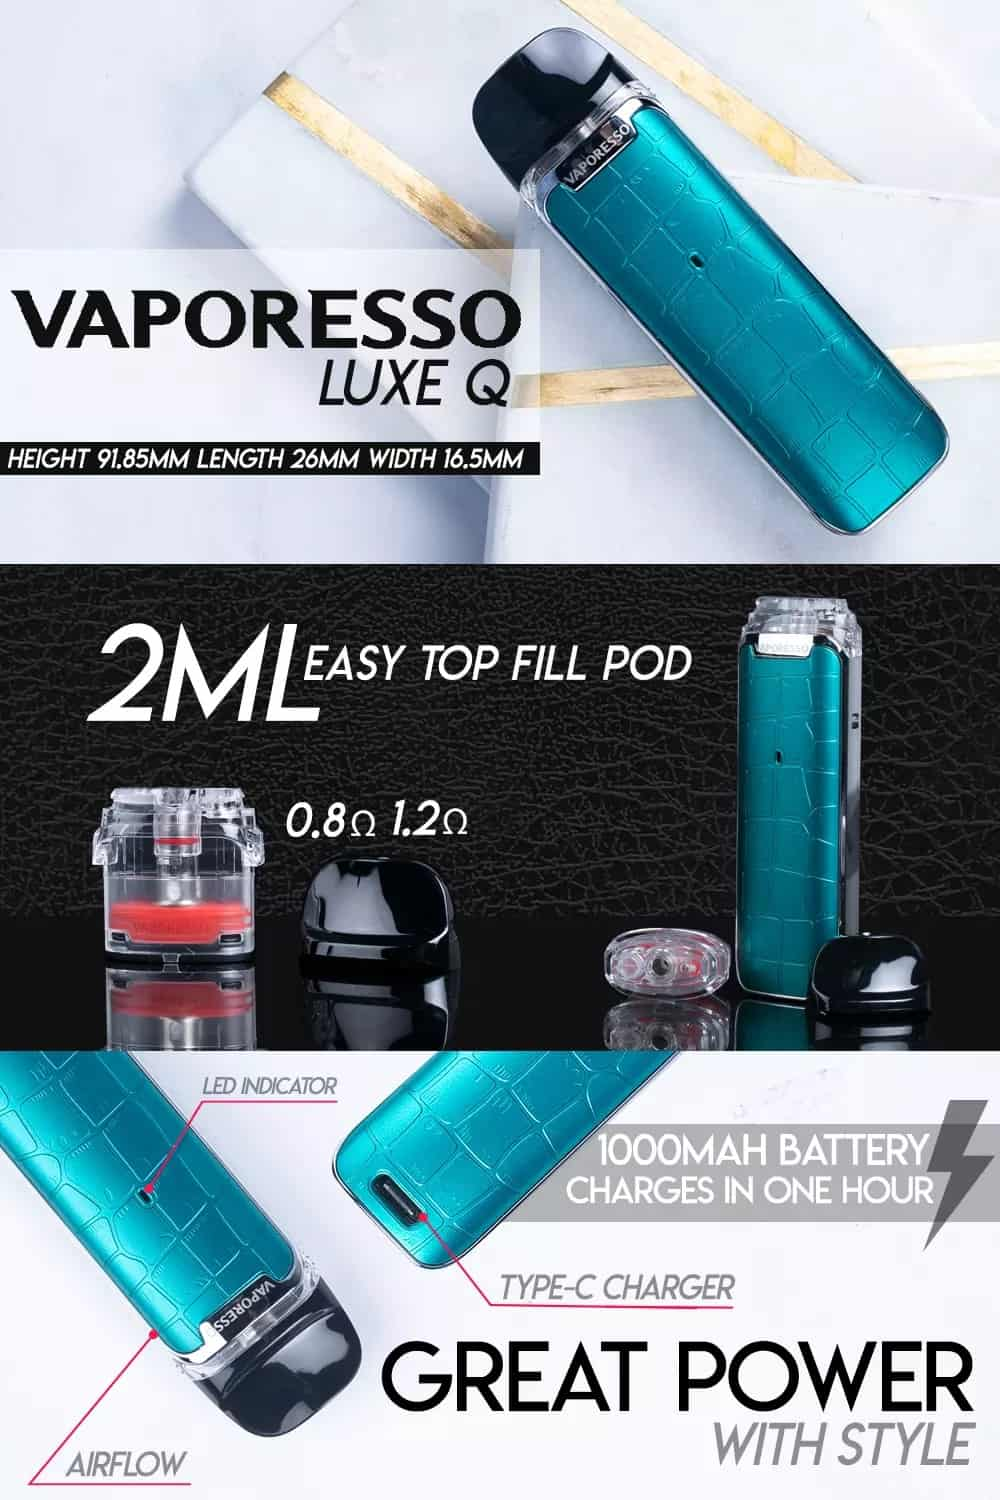 vaporesso luxe q pod system infographic